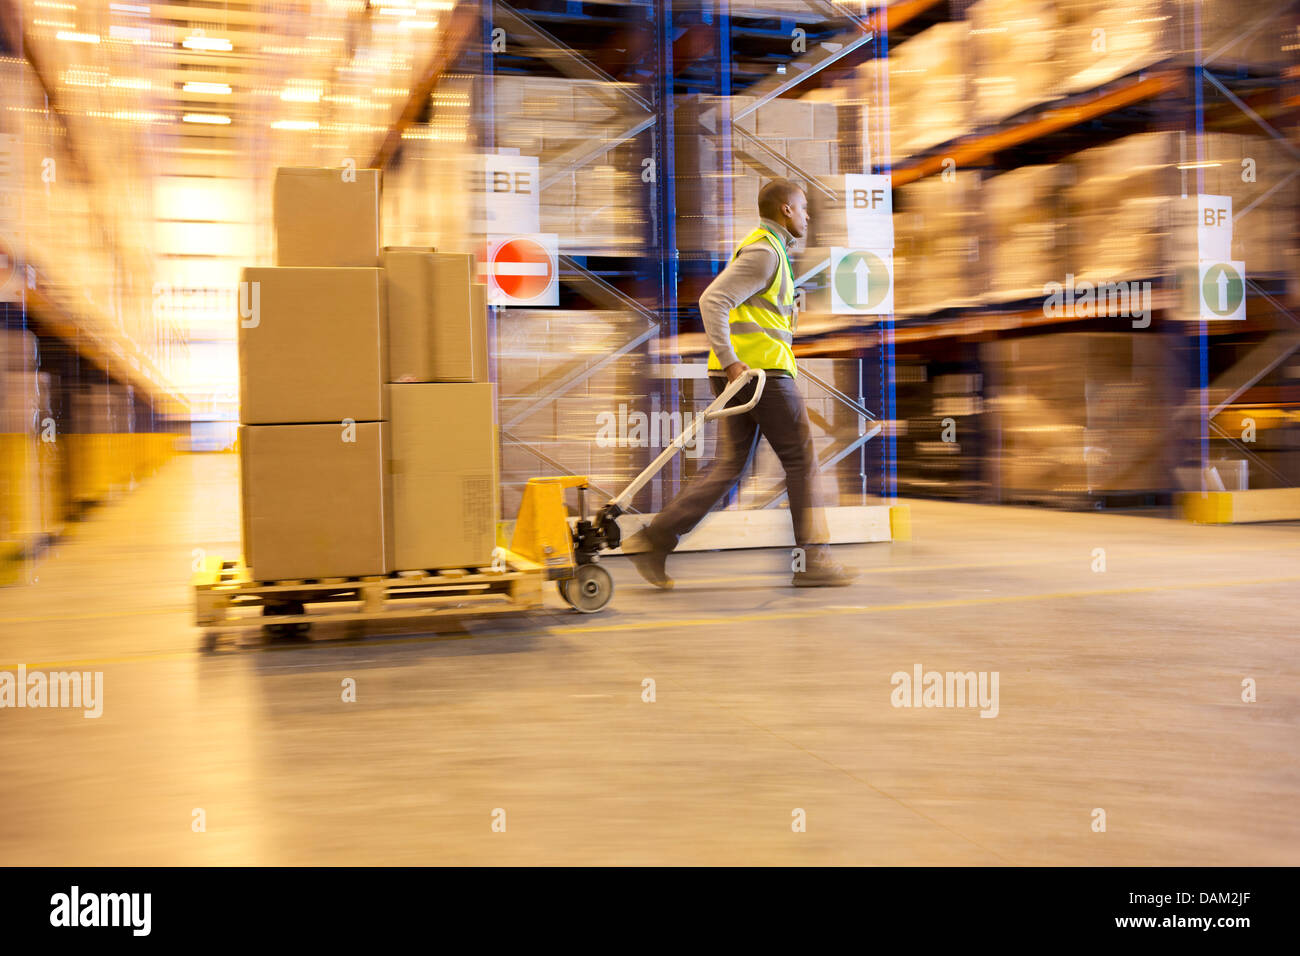 Blurred view of worker carting boxes in warehouse - Stock Image